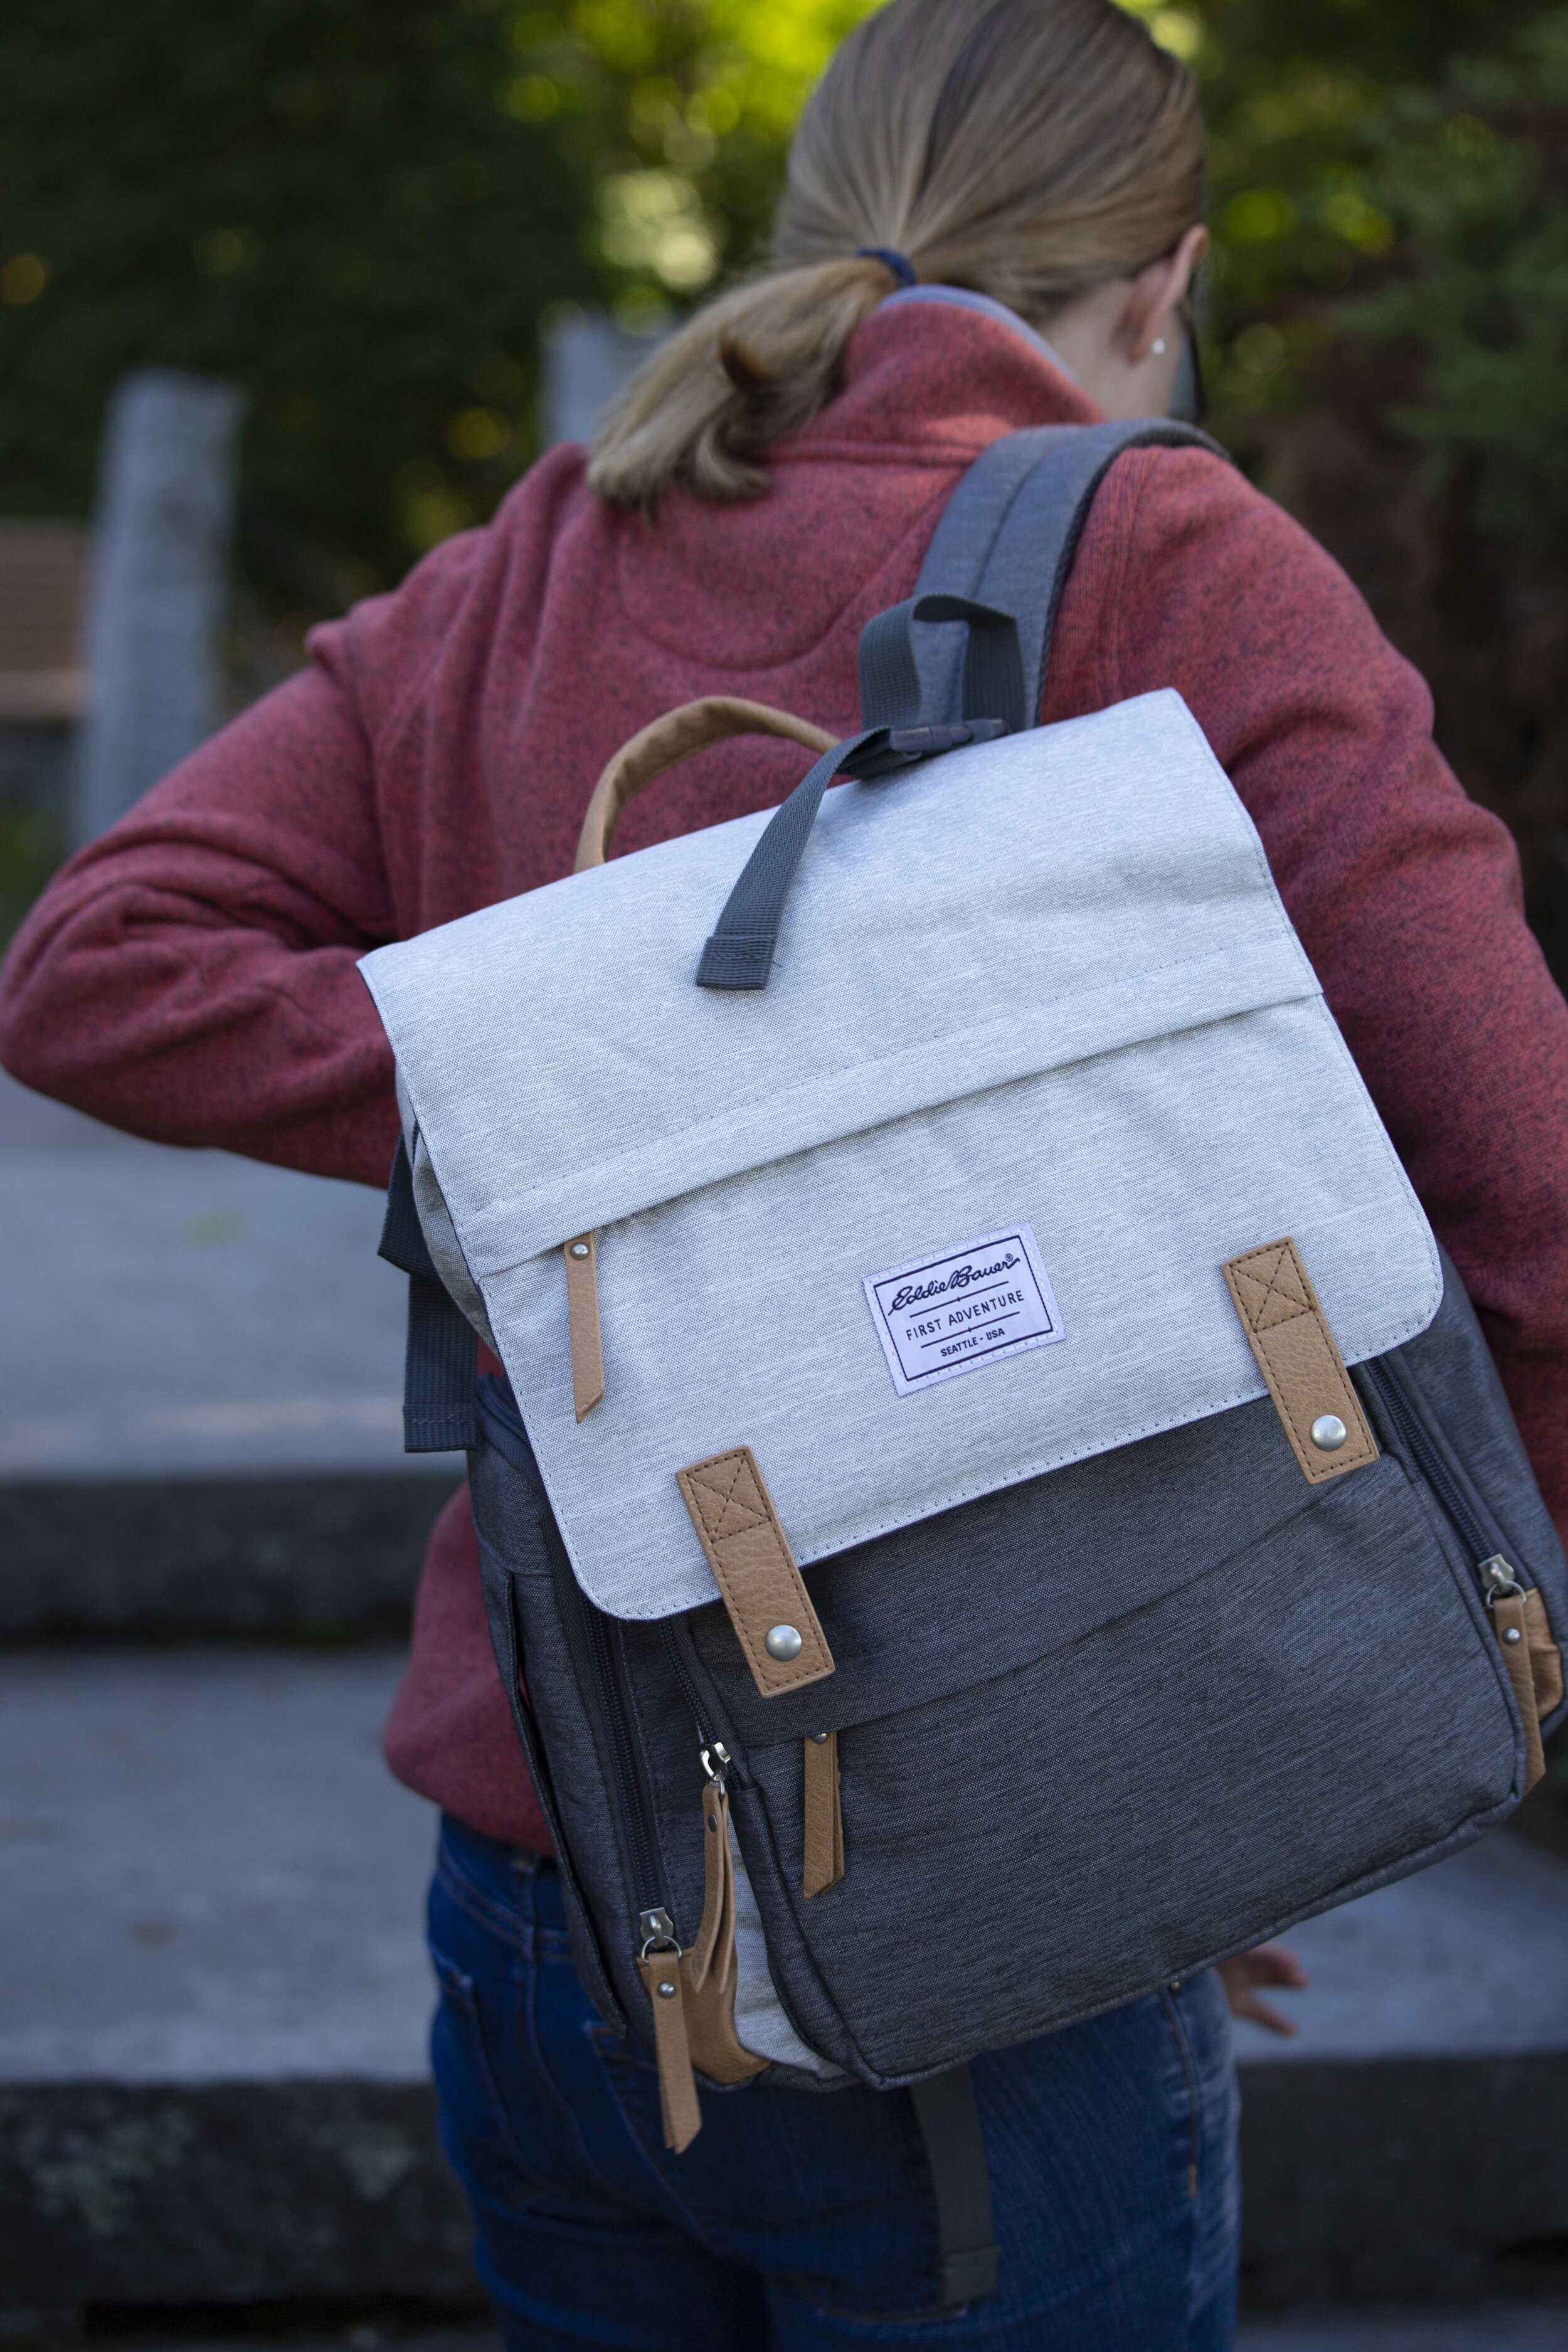 Out and About with the Eddie Bauer Cascade Diaper Backpack